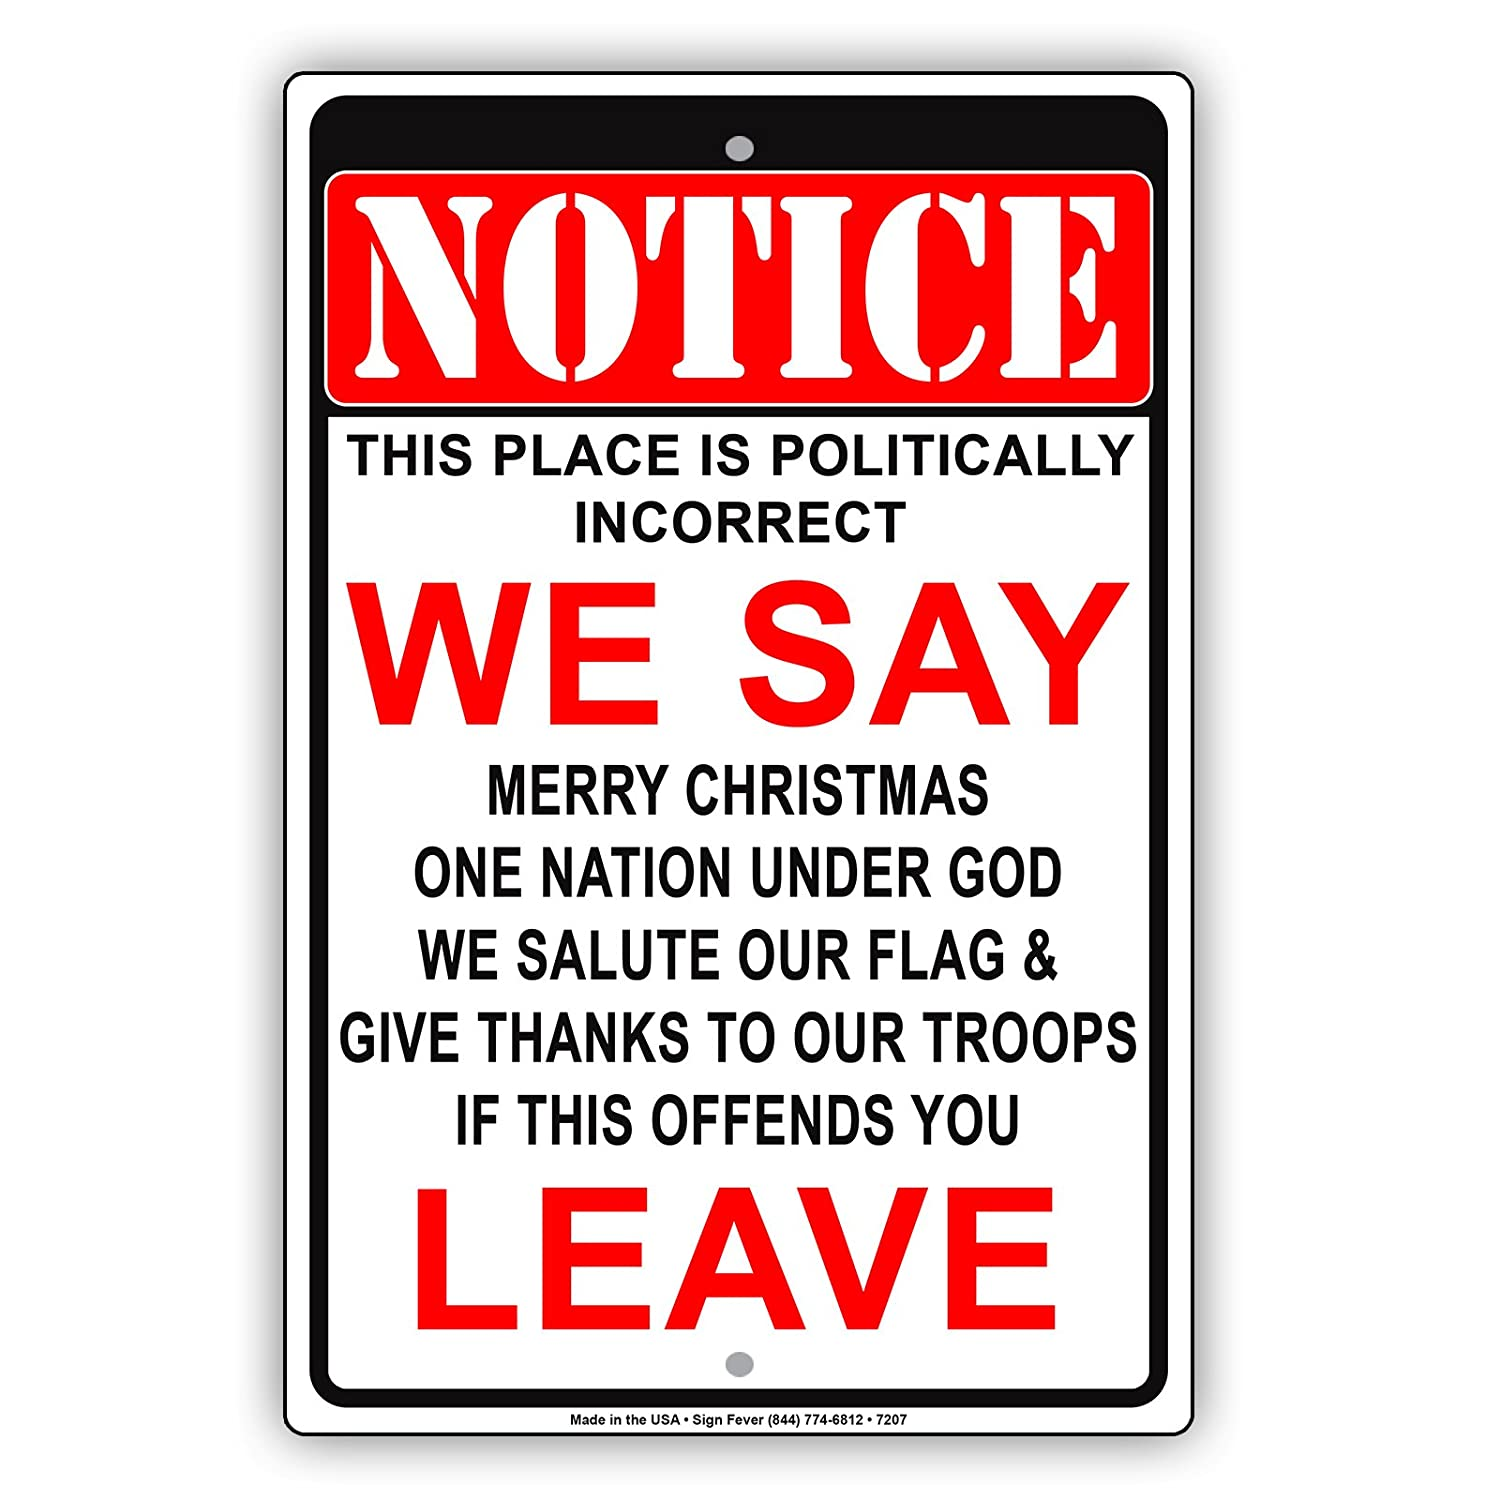 Amazon.com: Notice This Place Is Politically Incorrect We Say Merry ...